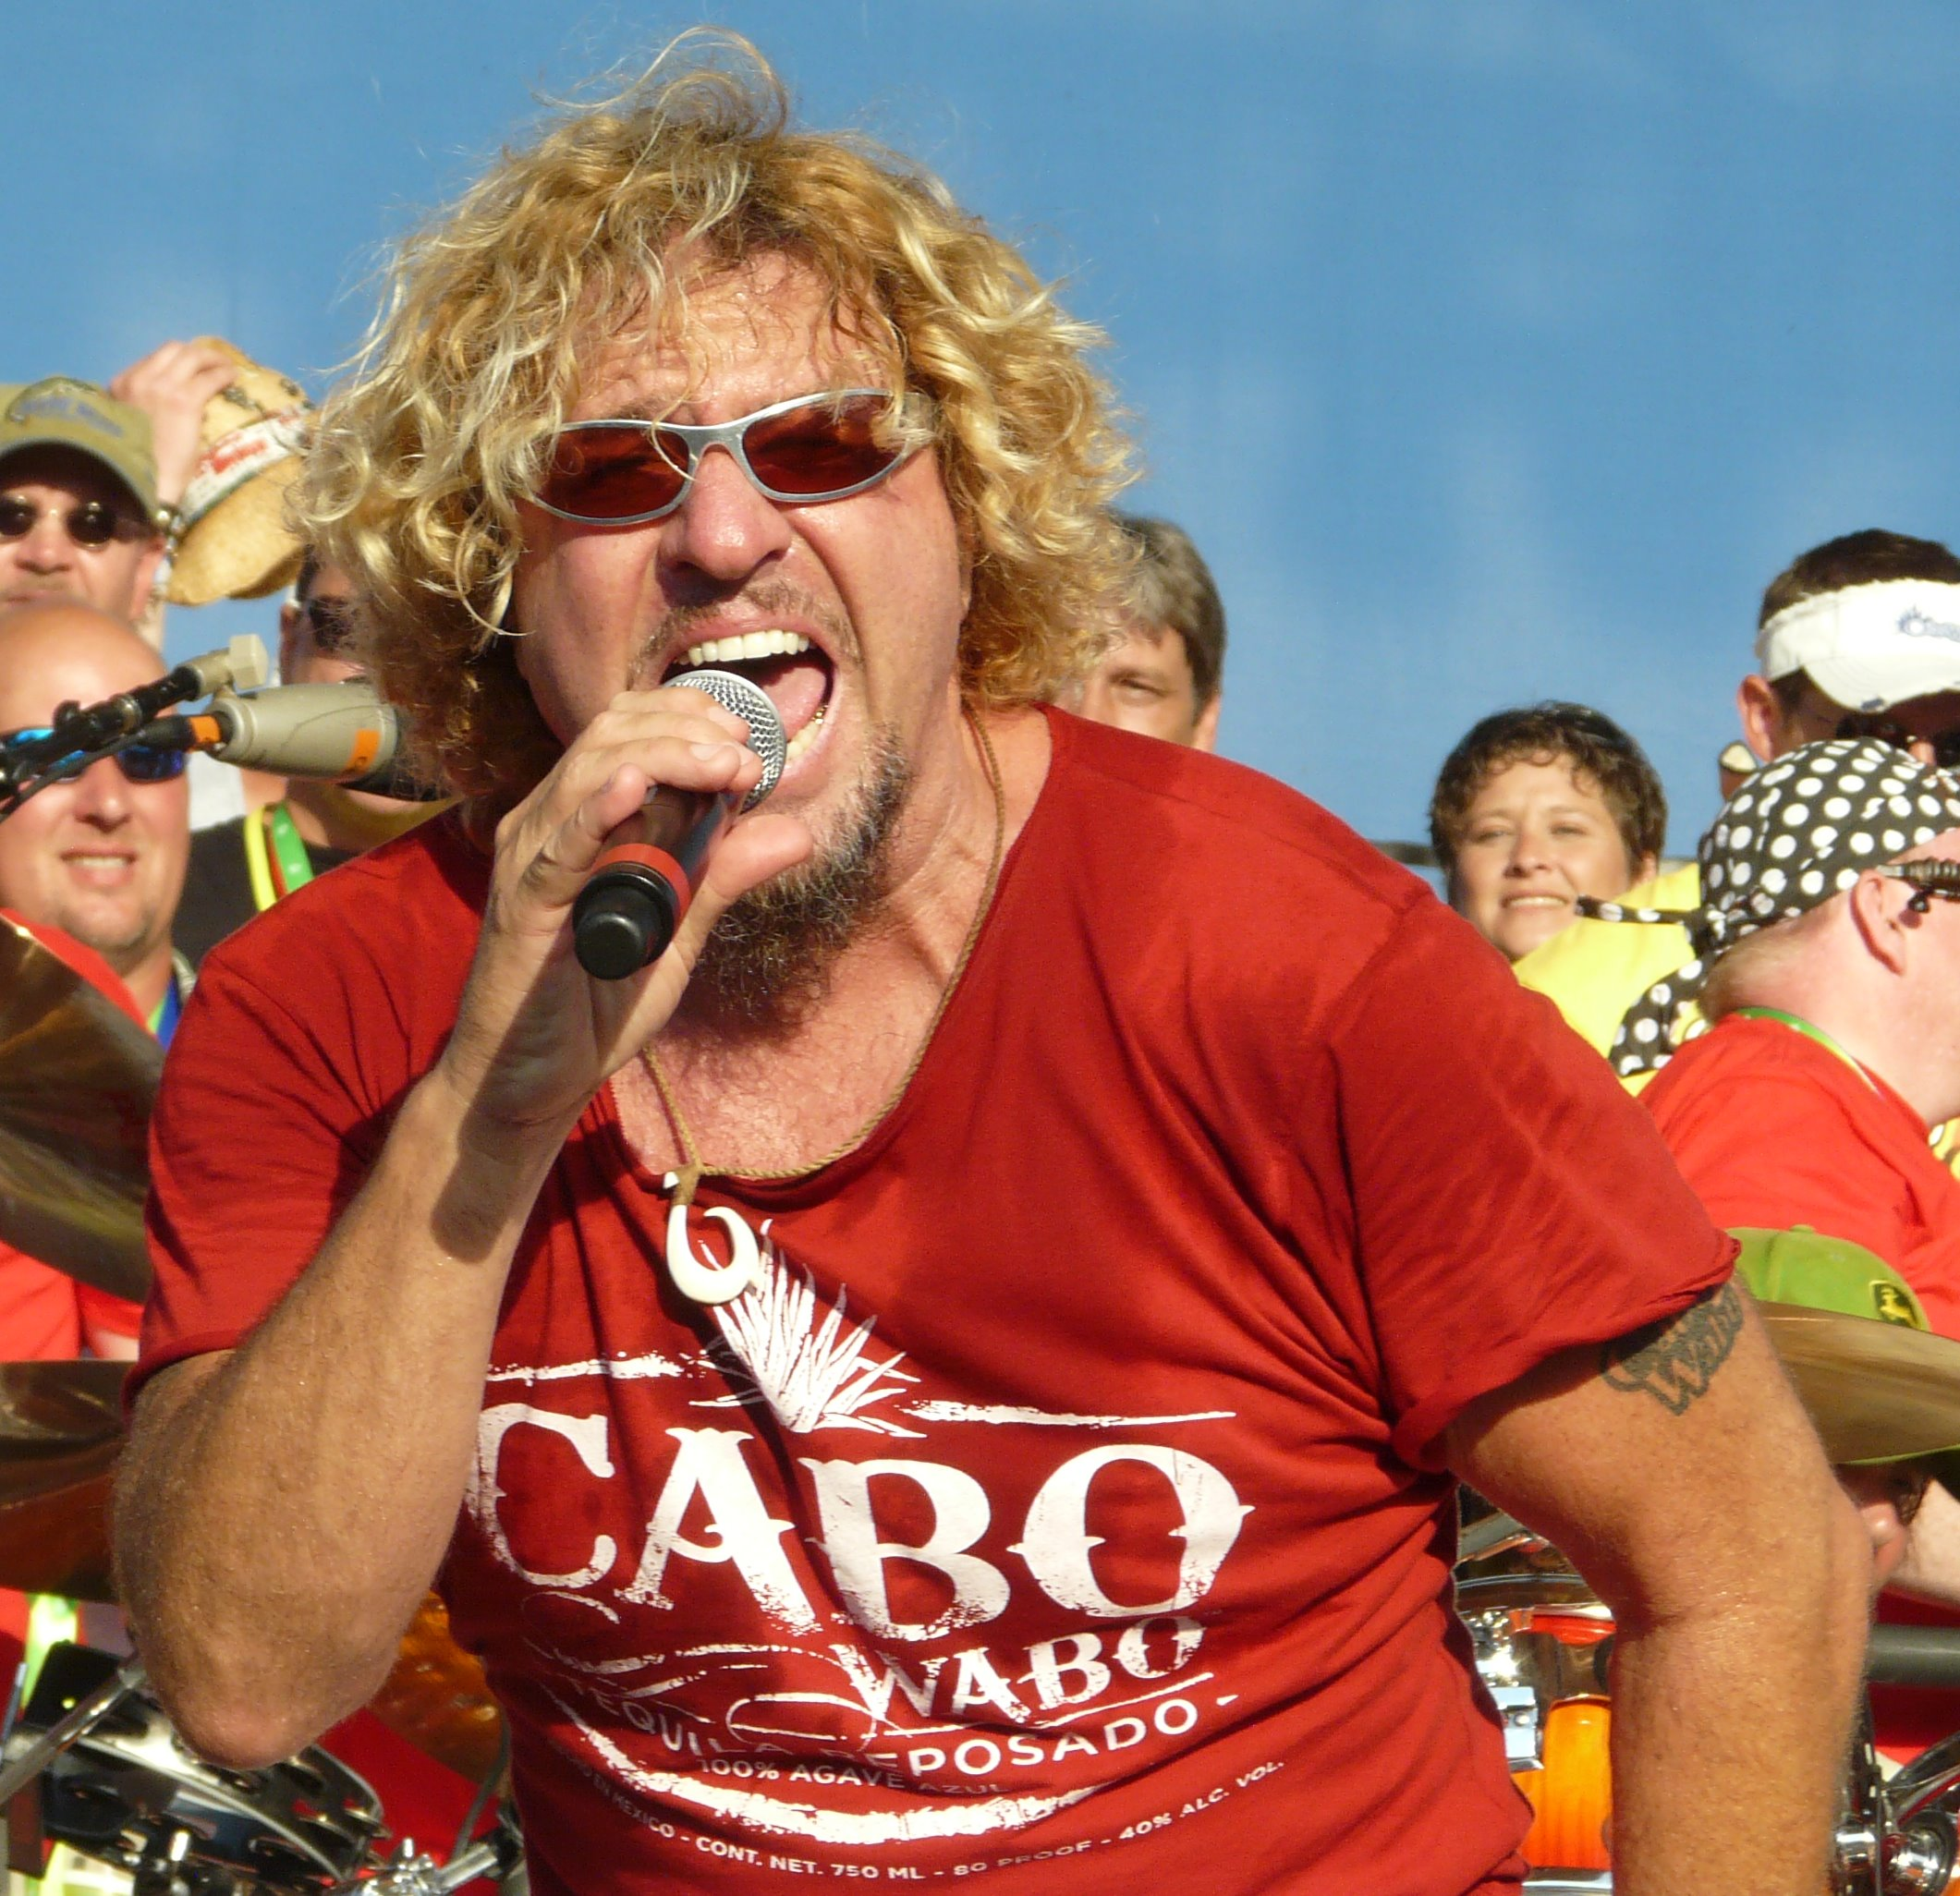 Hagar live at the [[Moondance Jam]] on July 10, 2008